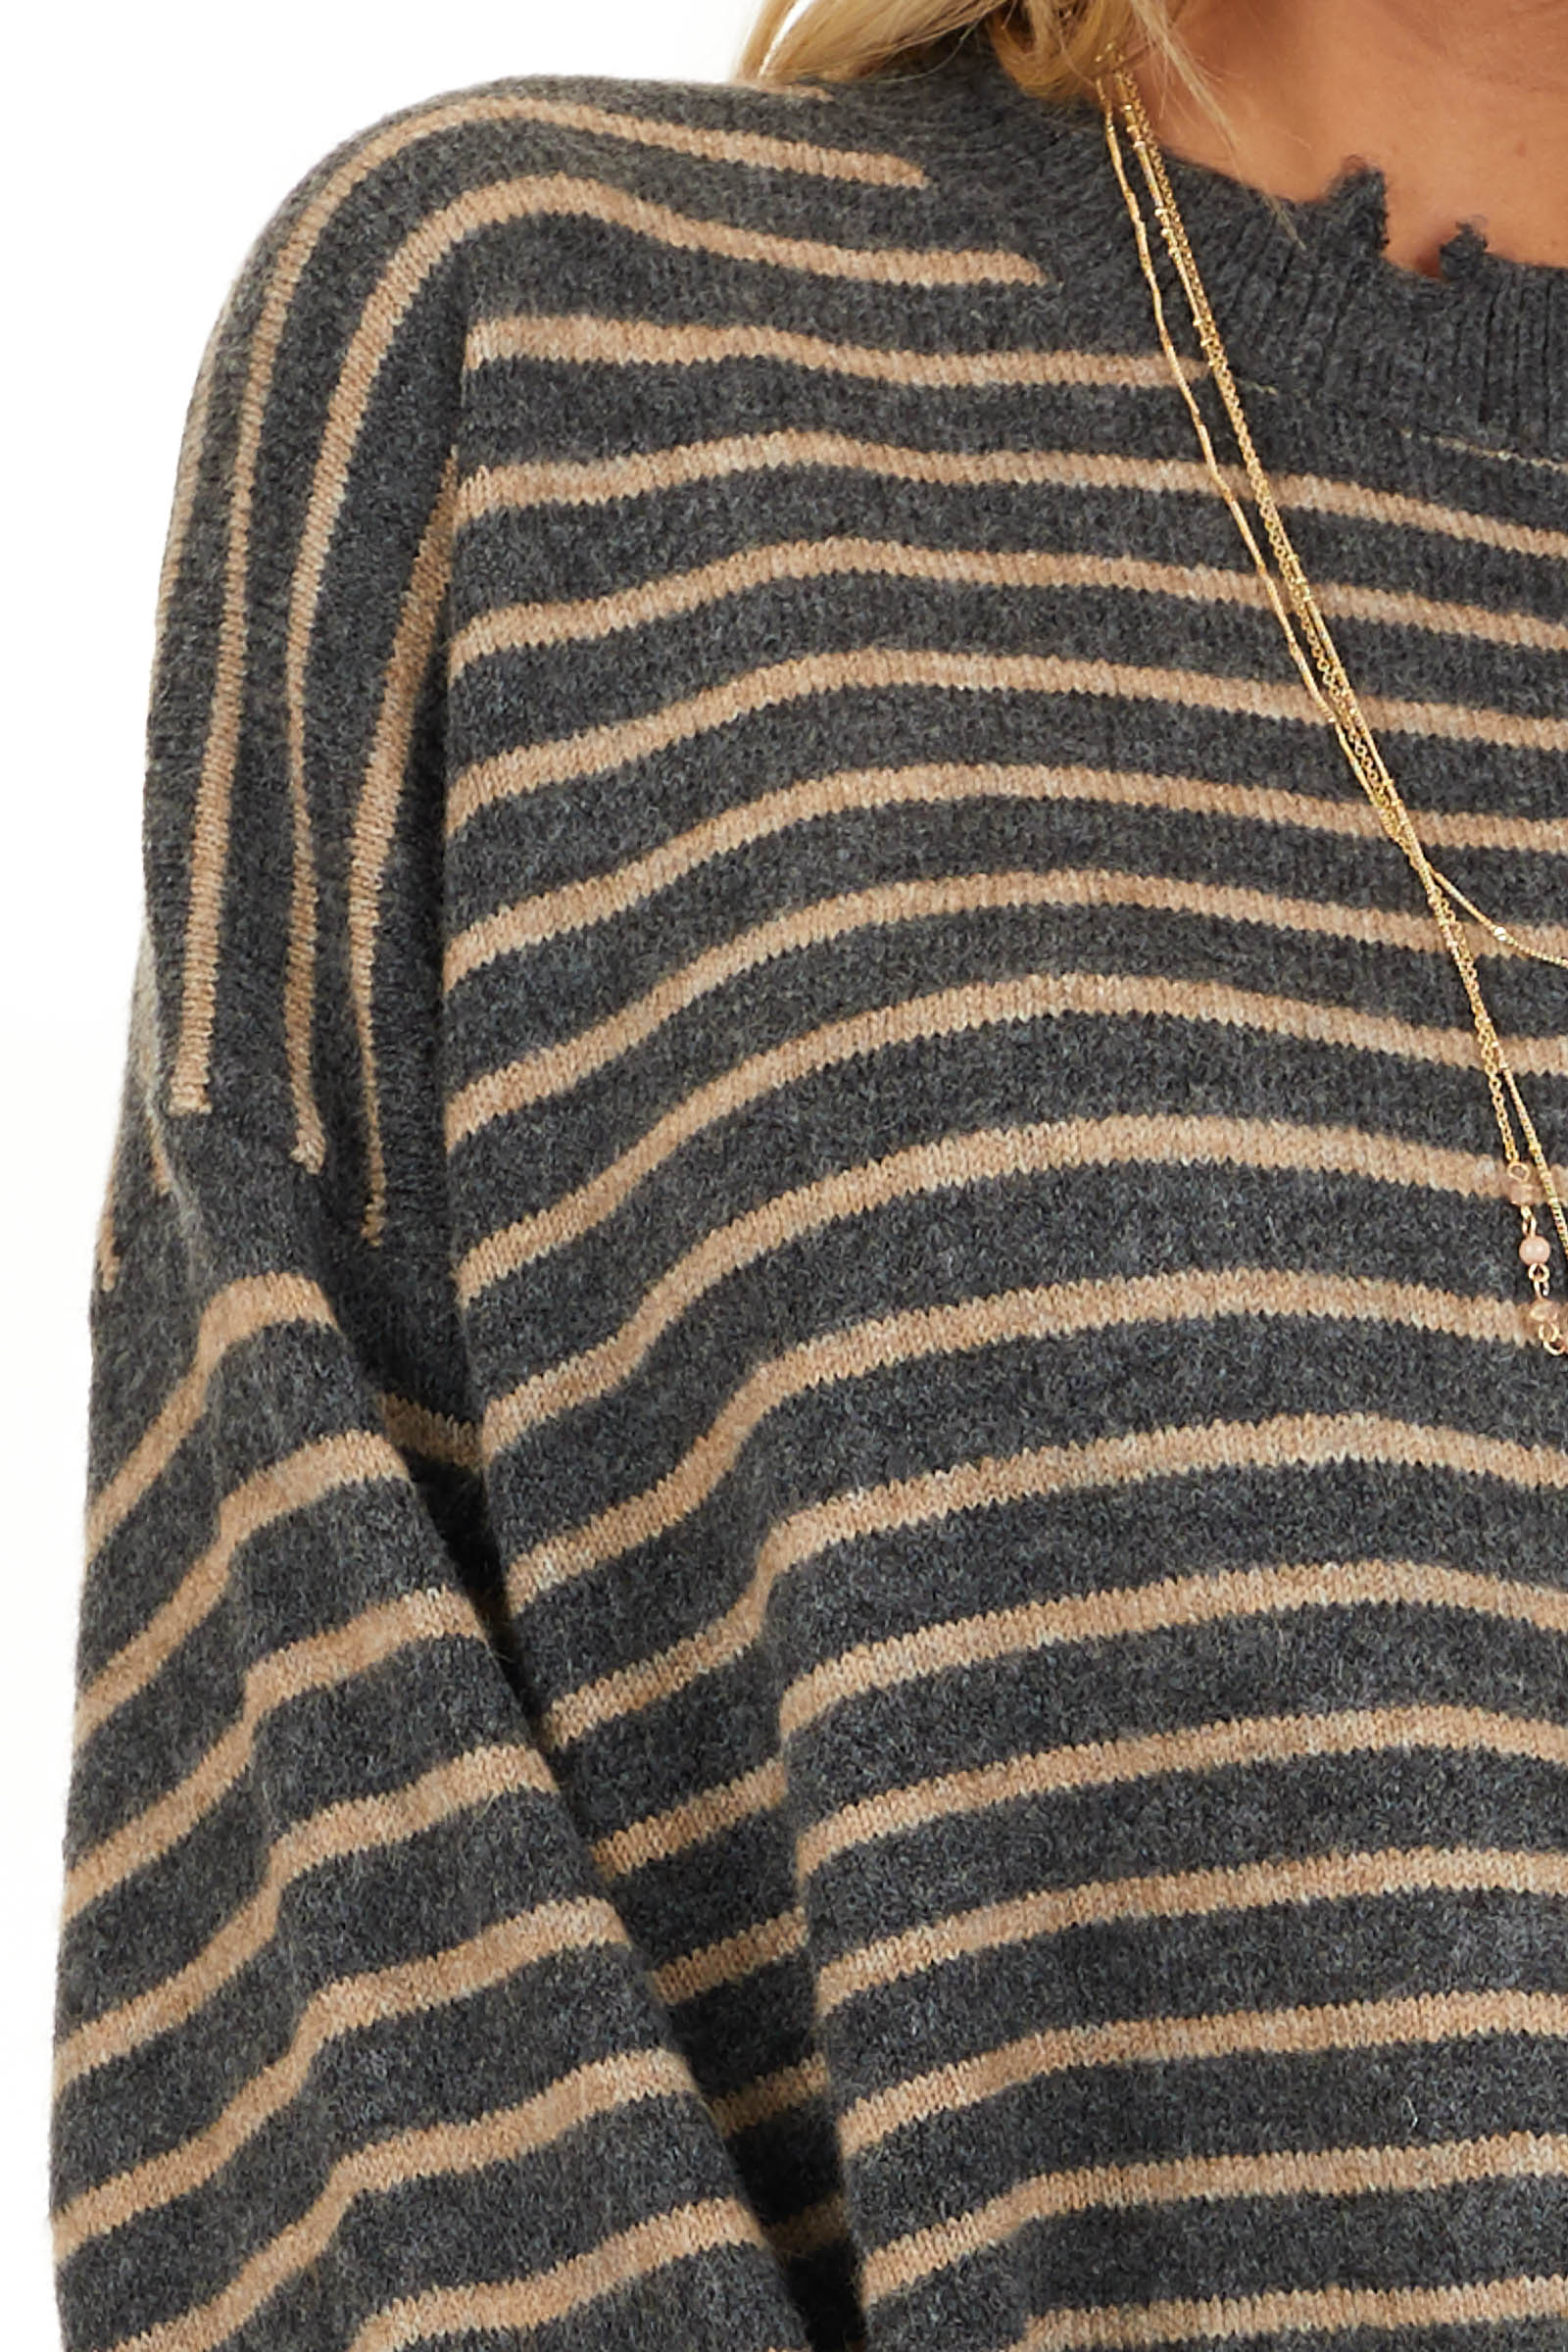 Black and Khaki Striped Sweater with Distressed Neckline detail